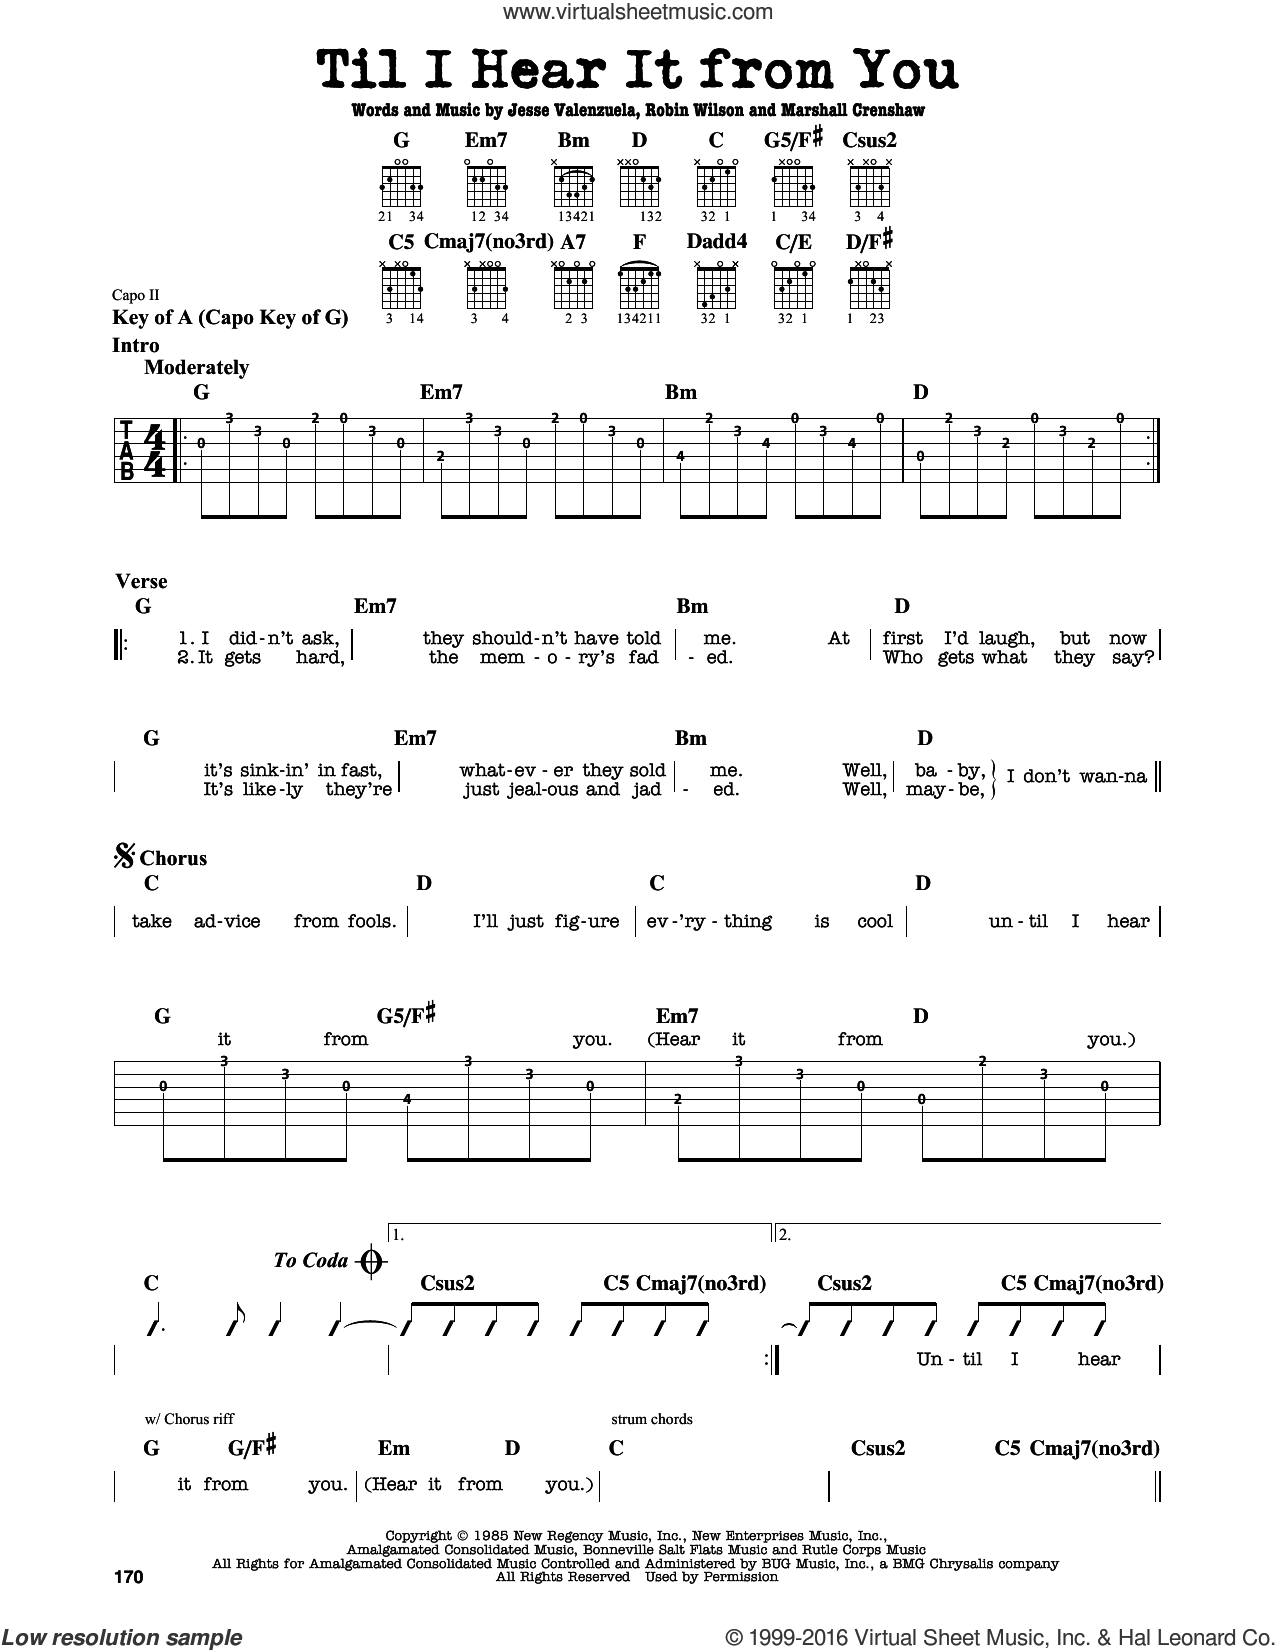 Til I Hear It From You sheet music for guitar solo (lead sheet) by Gin Blossoms, Jesse Valenzuela, Marshall Crenshaw and Robin Wilson, intermediate guitar (lead sheet)